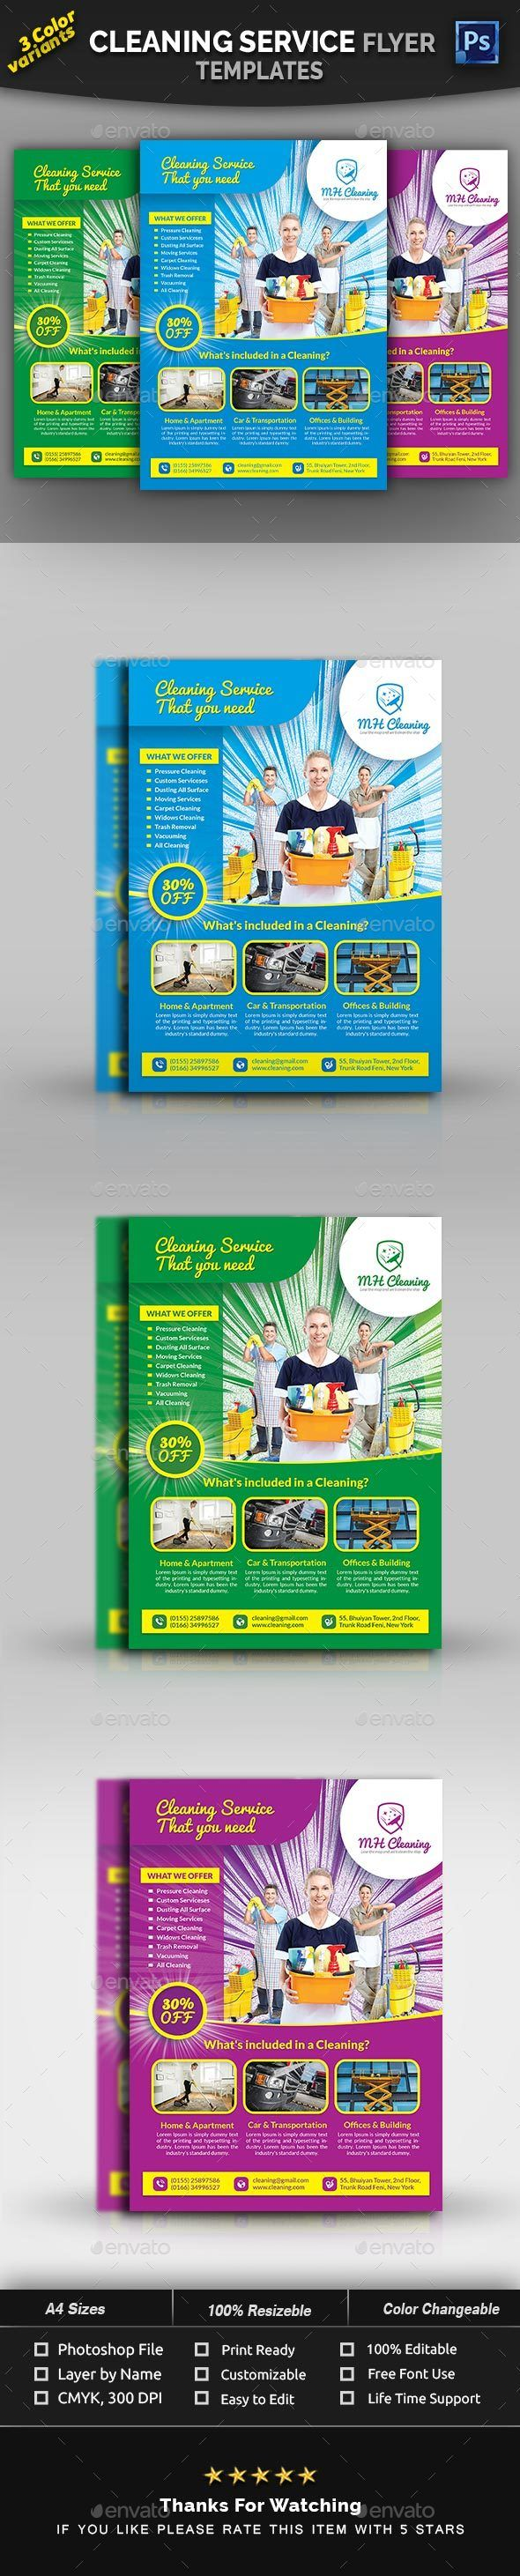 Cleaning Services Flyer Template Commerce Flyers